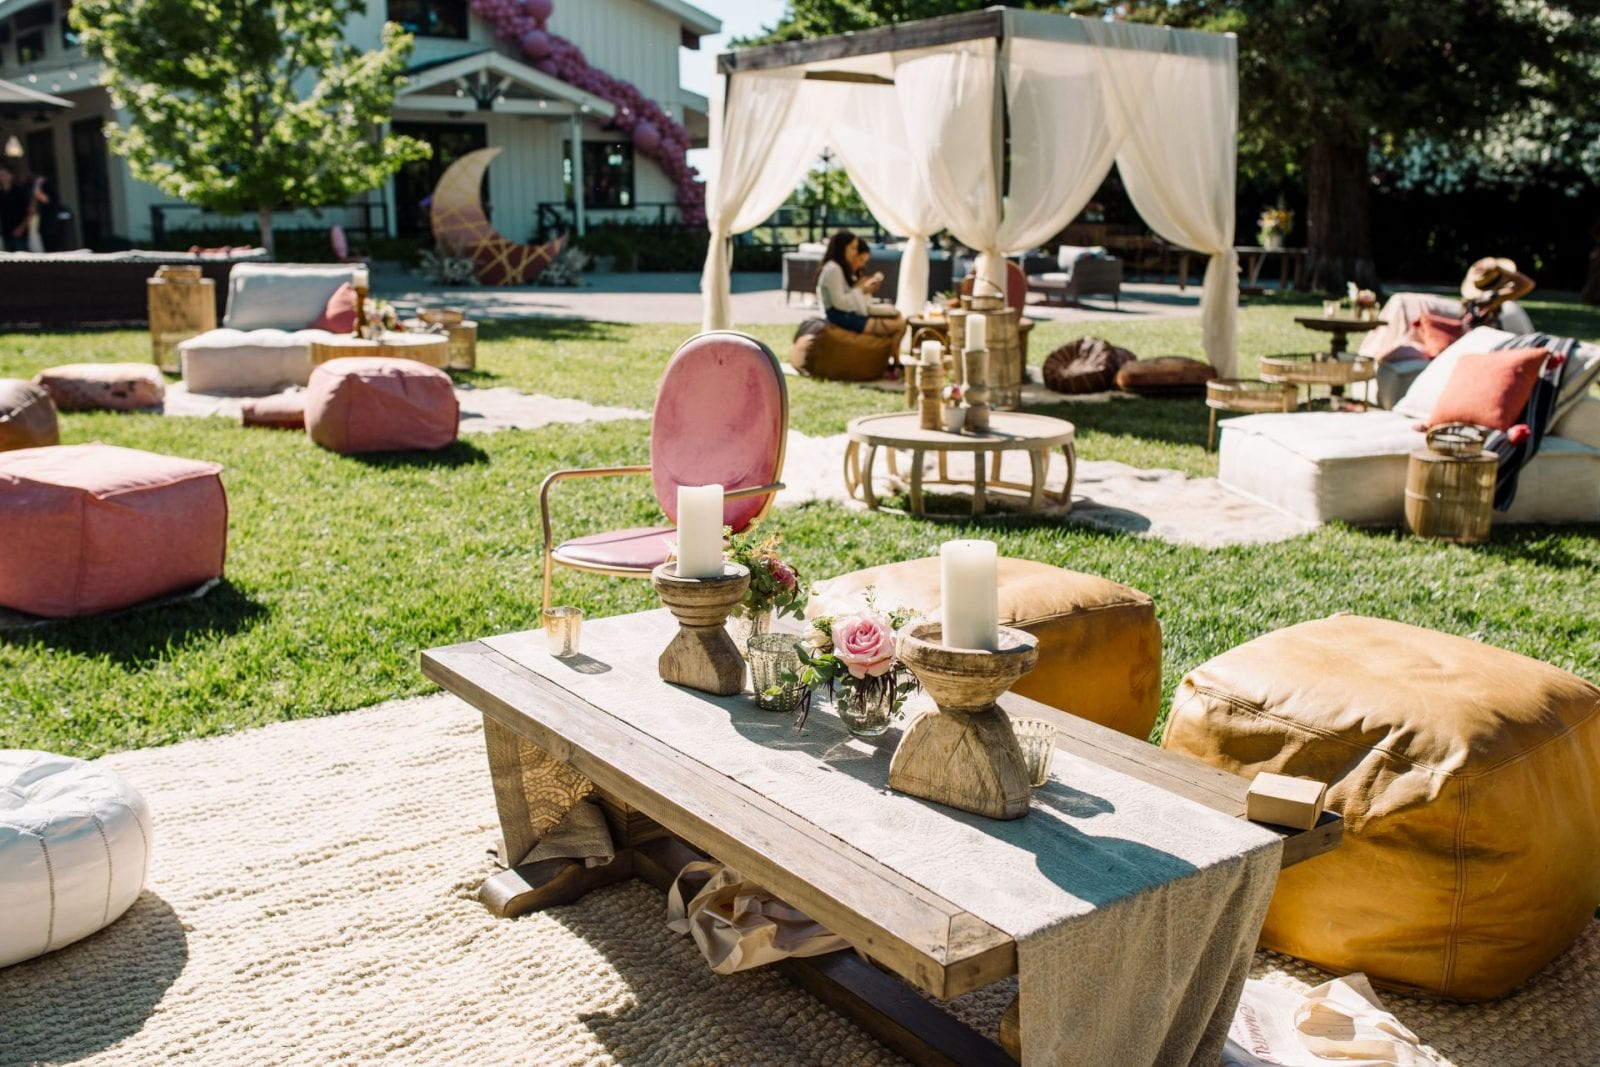 Park Winters Summerland 2019 | Northern California Wedding Event Venue | Summer Pool Party Inspiration | Event Boho Rentals | SarahMichiko.com